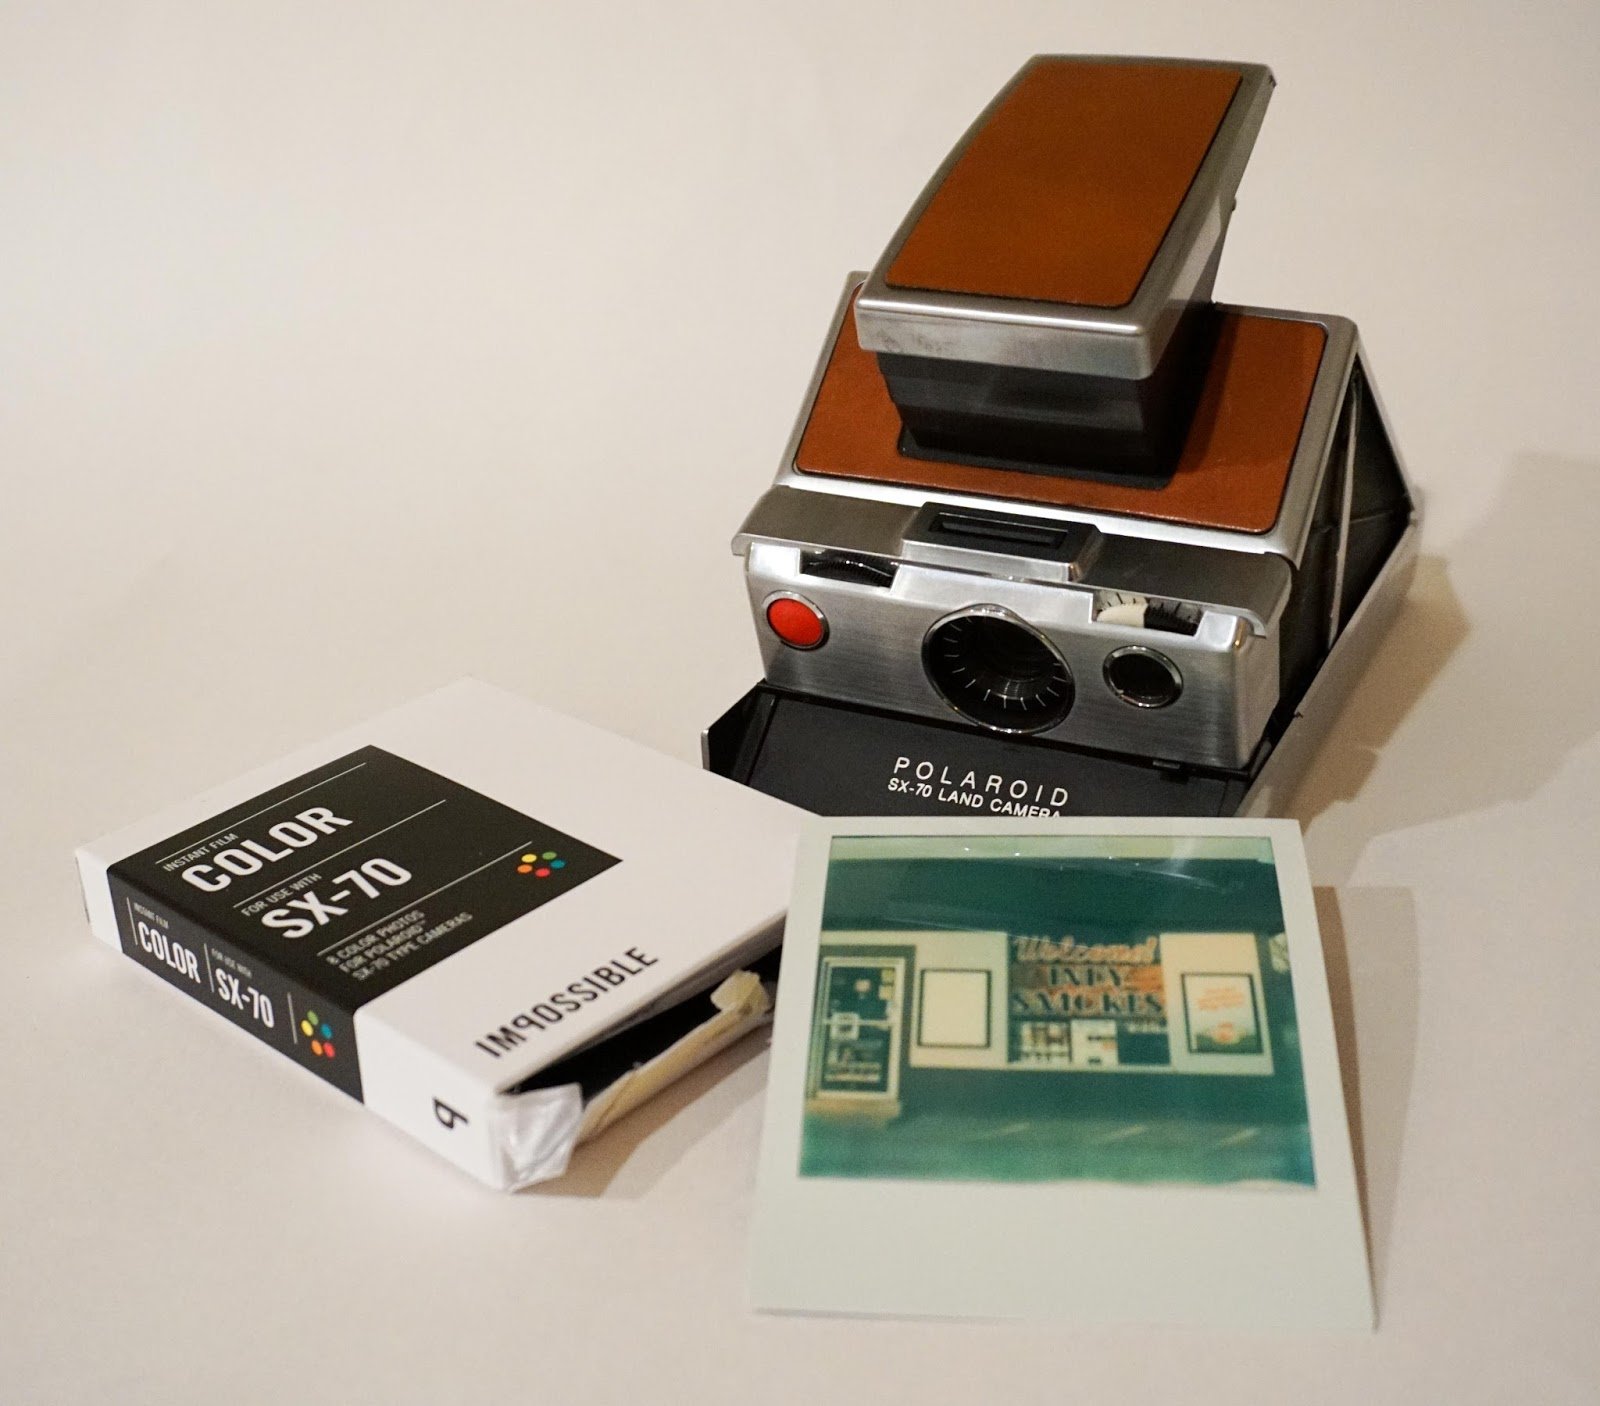 Polaroid sx70's design was revolutionary as it could fold flat and slip right into a pocket.